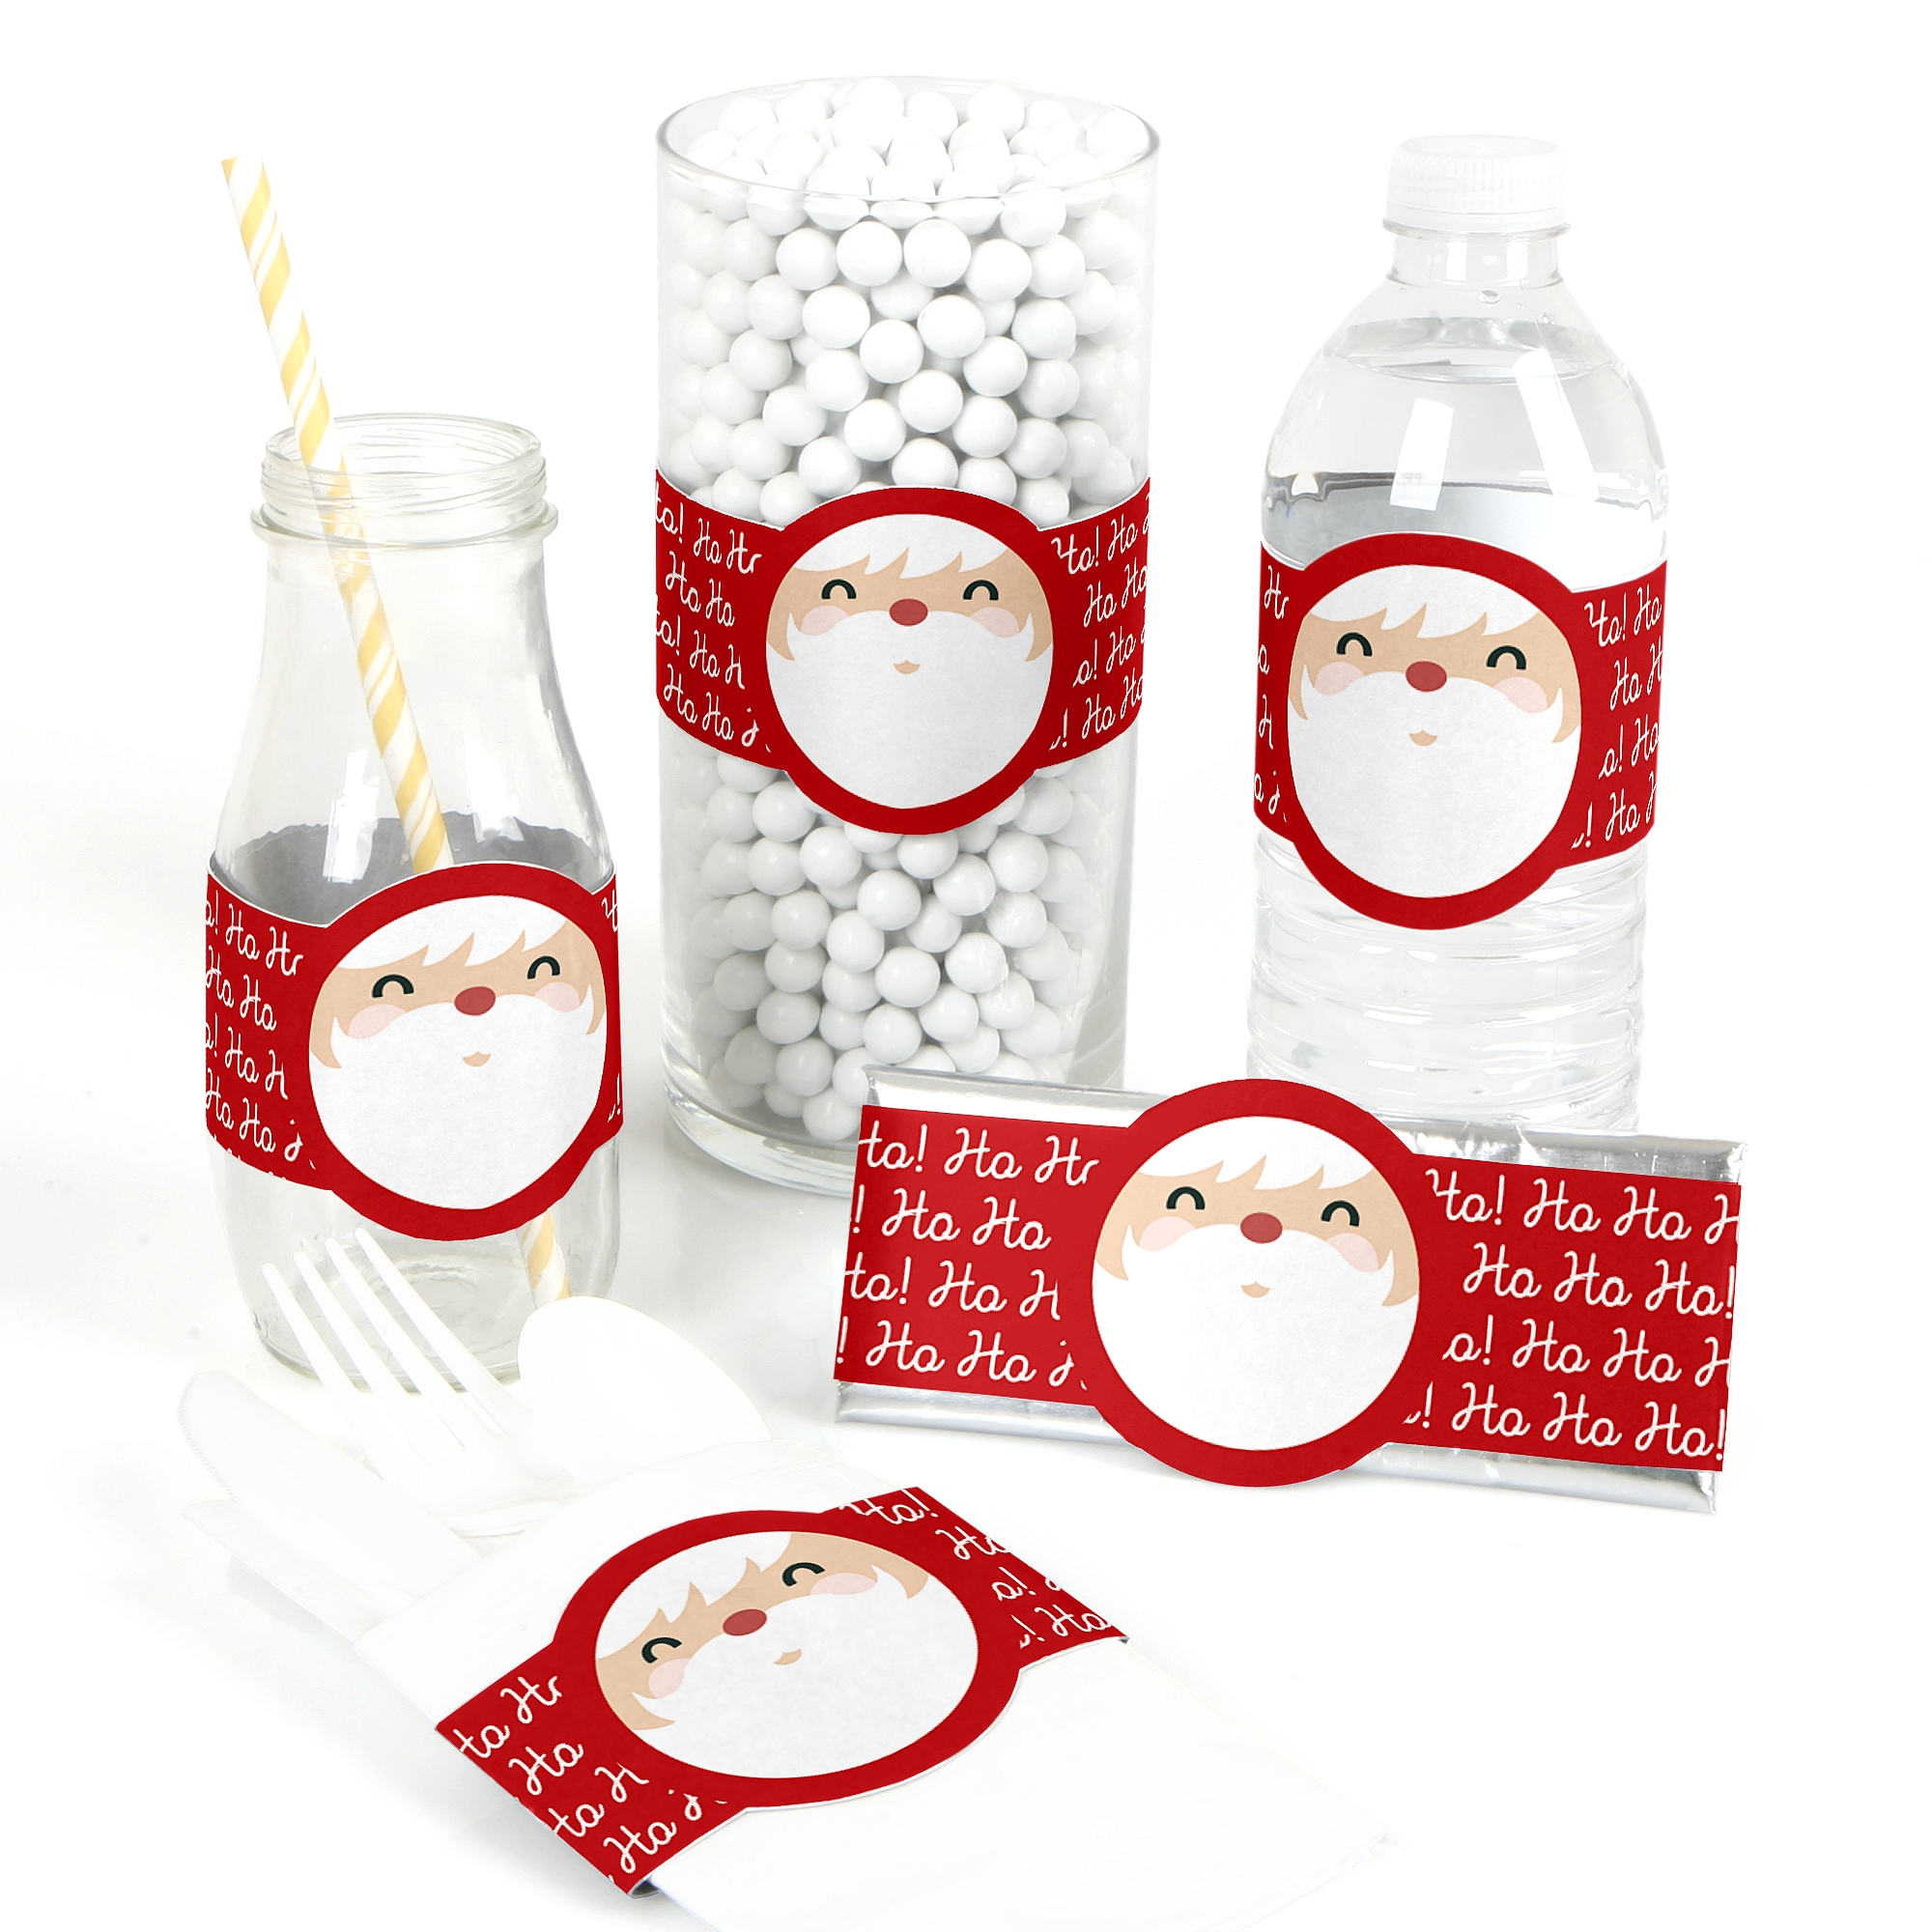 Jolly Santa Claus - DIY Christmas Party Wrapper Favors - Set of 15